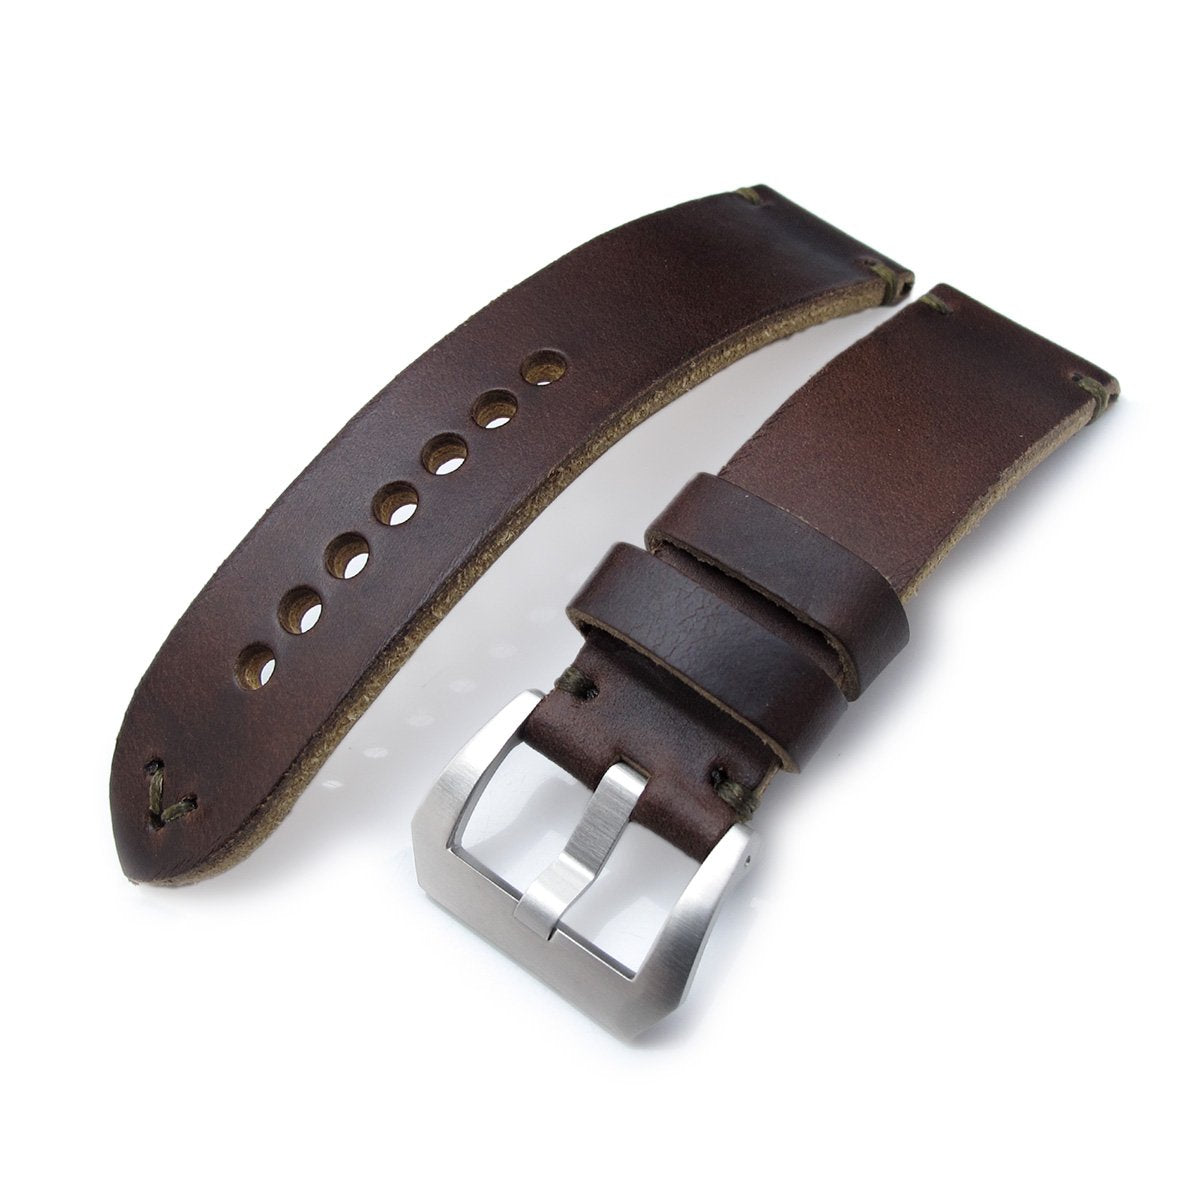 24mm MiLTAT Horween Chromexcel Watch Strap Matte Brown Military Green Stitching Strapcode Watch Bands